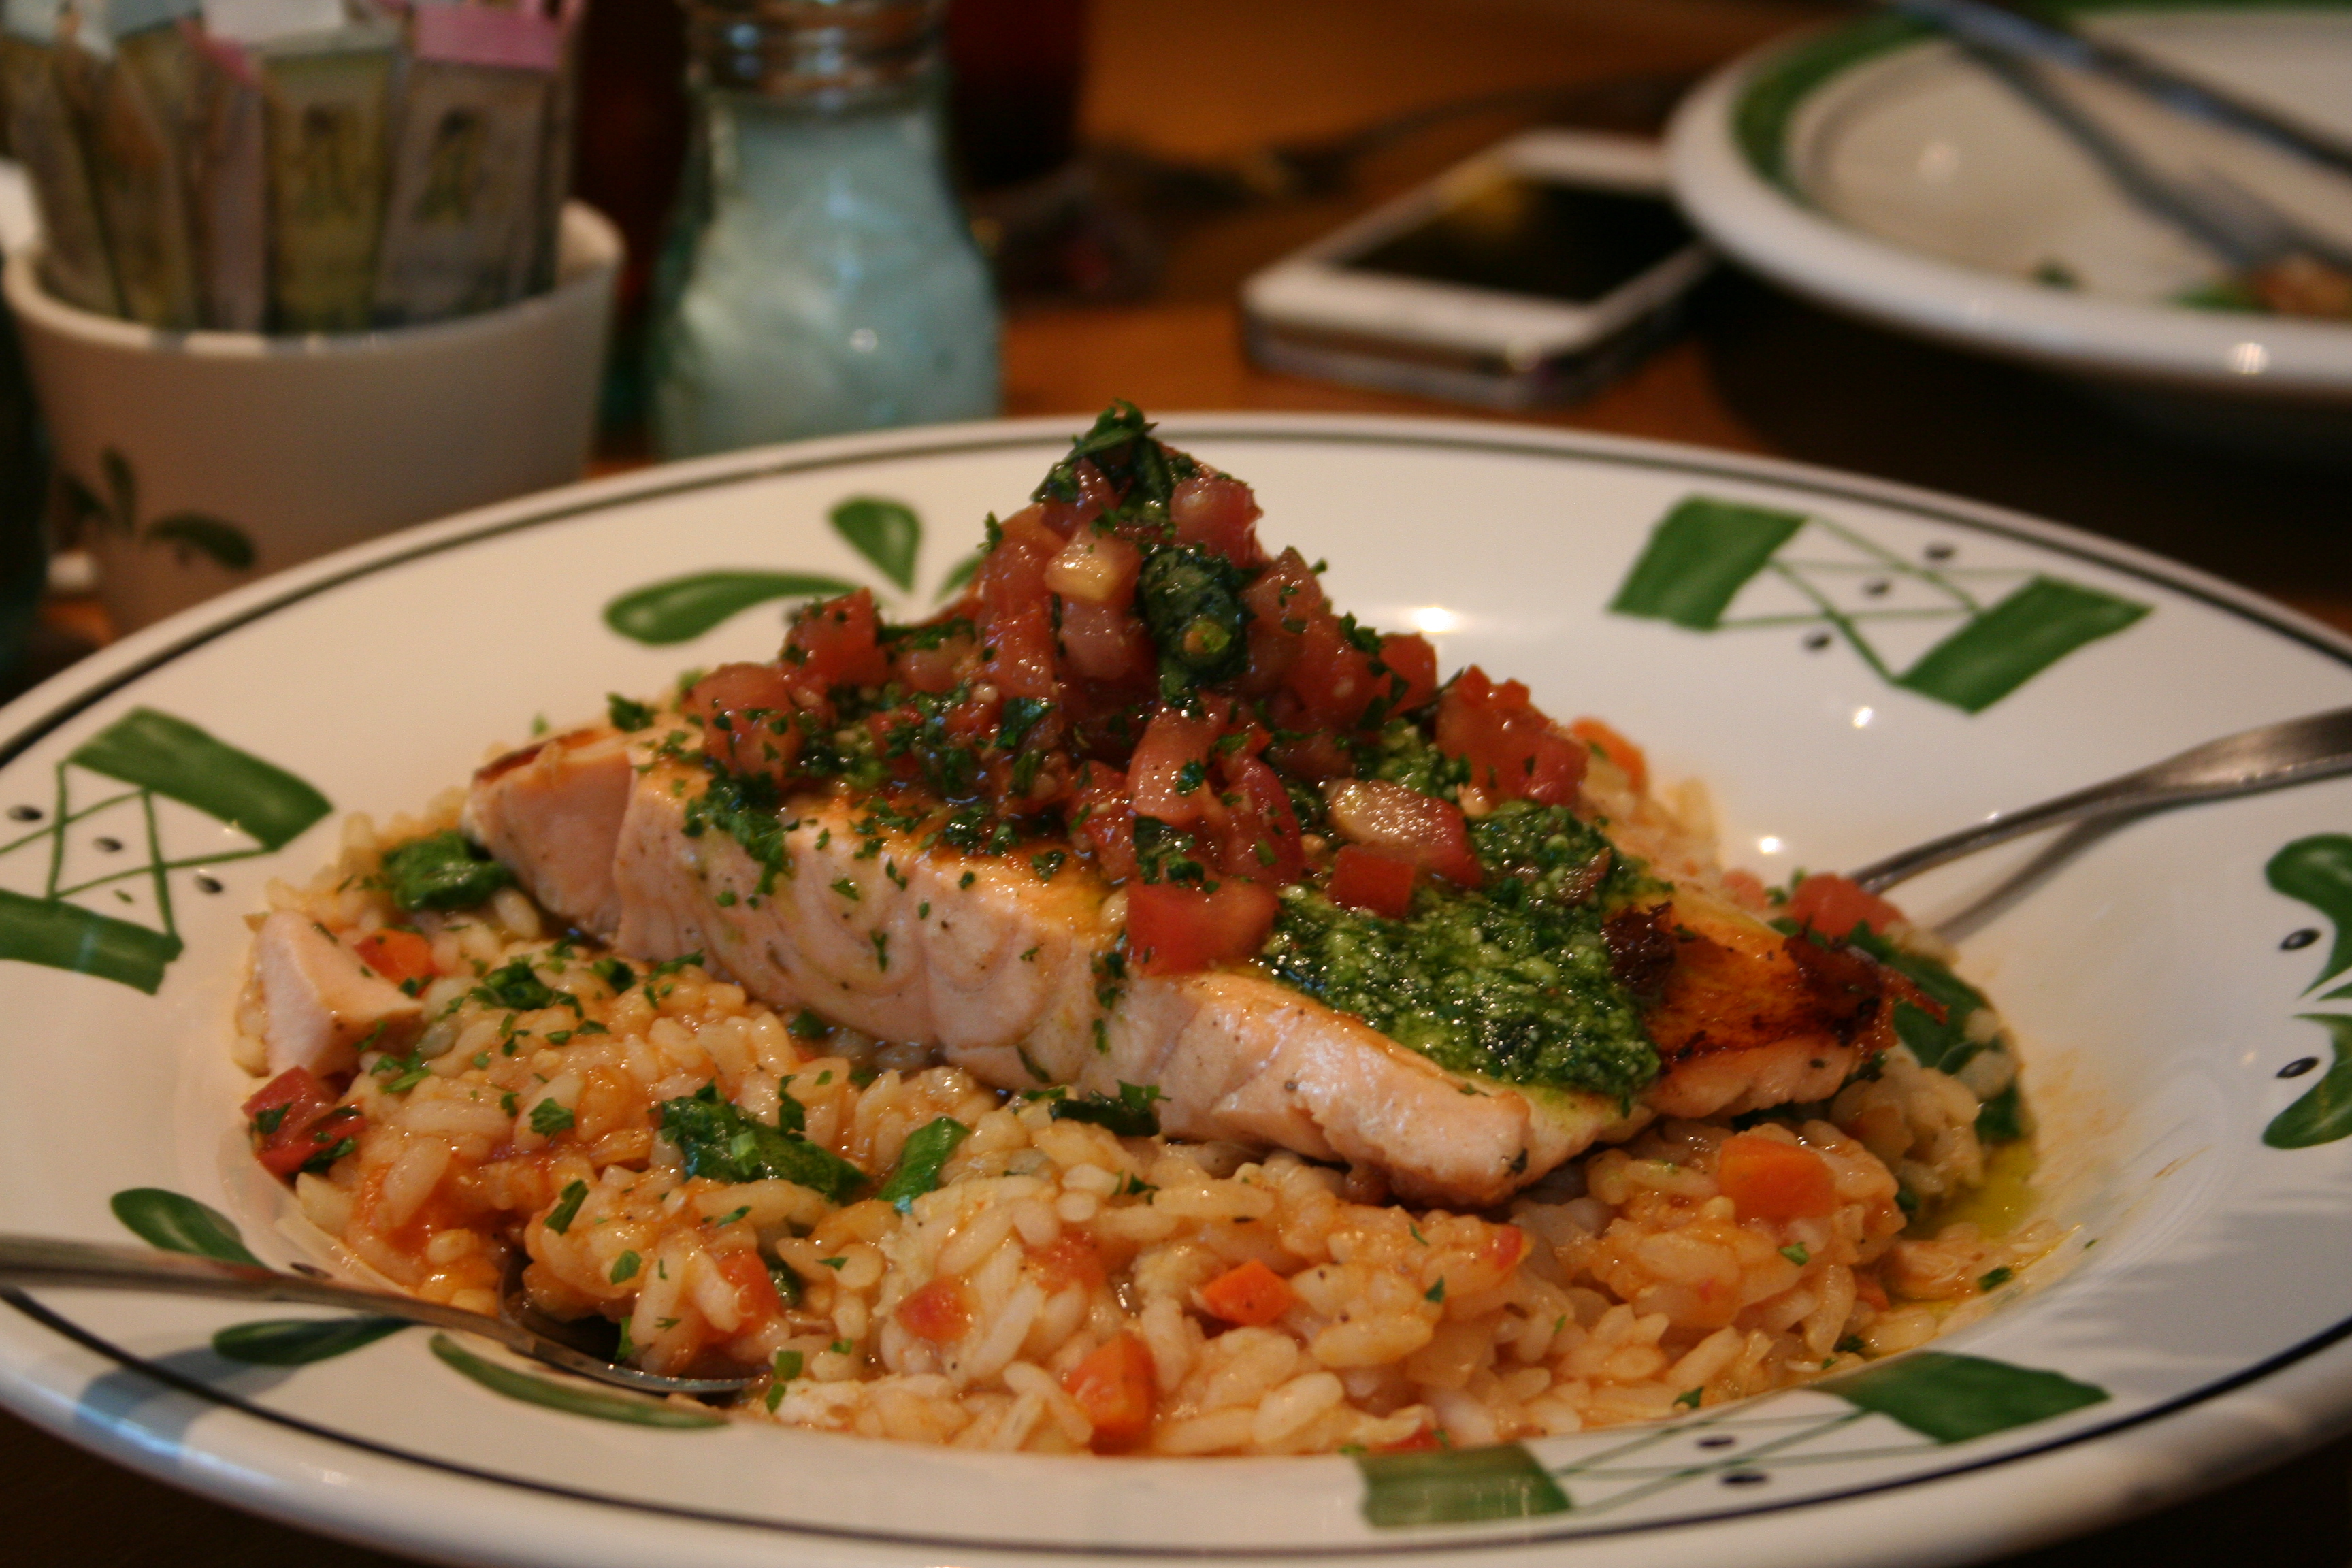 Olive Garden Announces New Lighter Fare Menu - Latinofoodie Blog